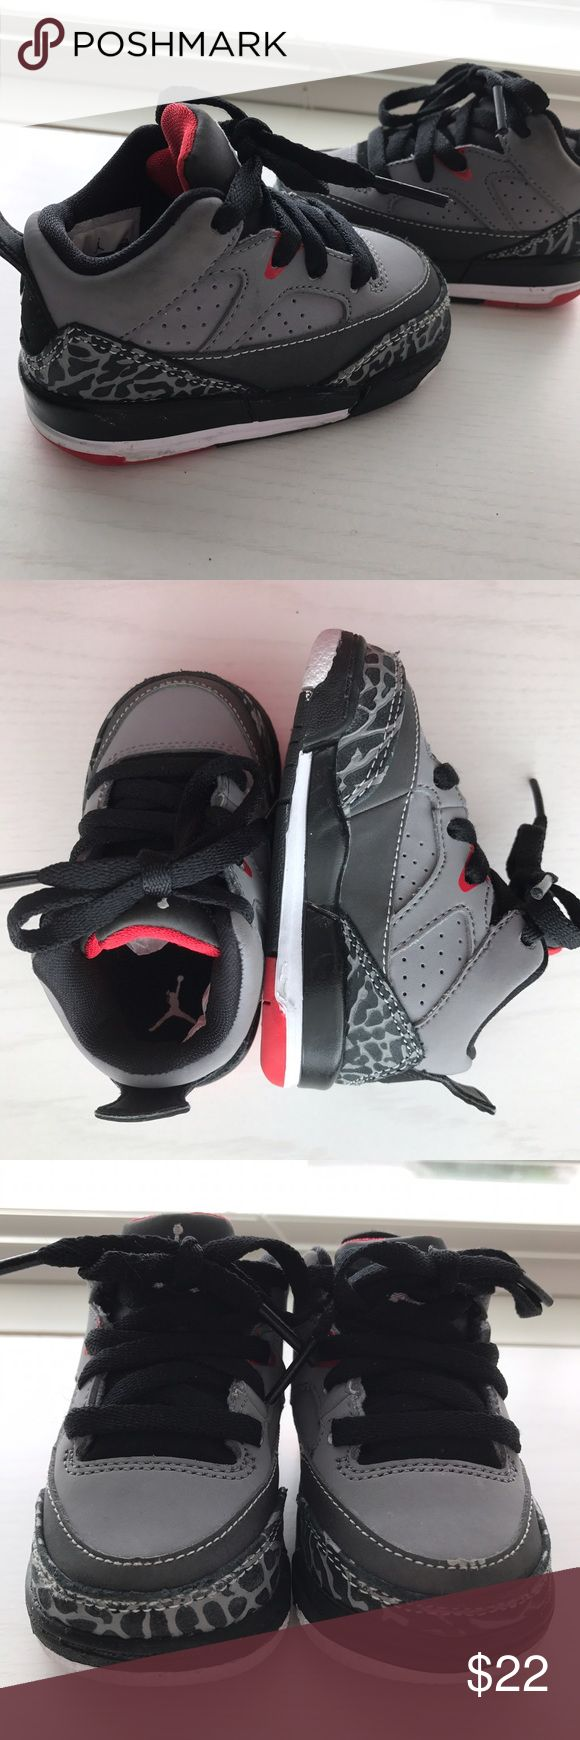 Nike Baby Air Jordan Shoes • Size 4 Nike Baby Air Jordan Shoes • Size 4 • Gender Neutral• Gently Used • Red, Black, Grey & White • Can Usually Fit Ages 6 Months to One Year, Give Or Take• Comes from a Smoke-Free Home • Cat-Free Home • Very Cute! • Make Me An Offer! Nike Shoes Baby & Walker